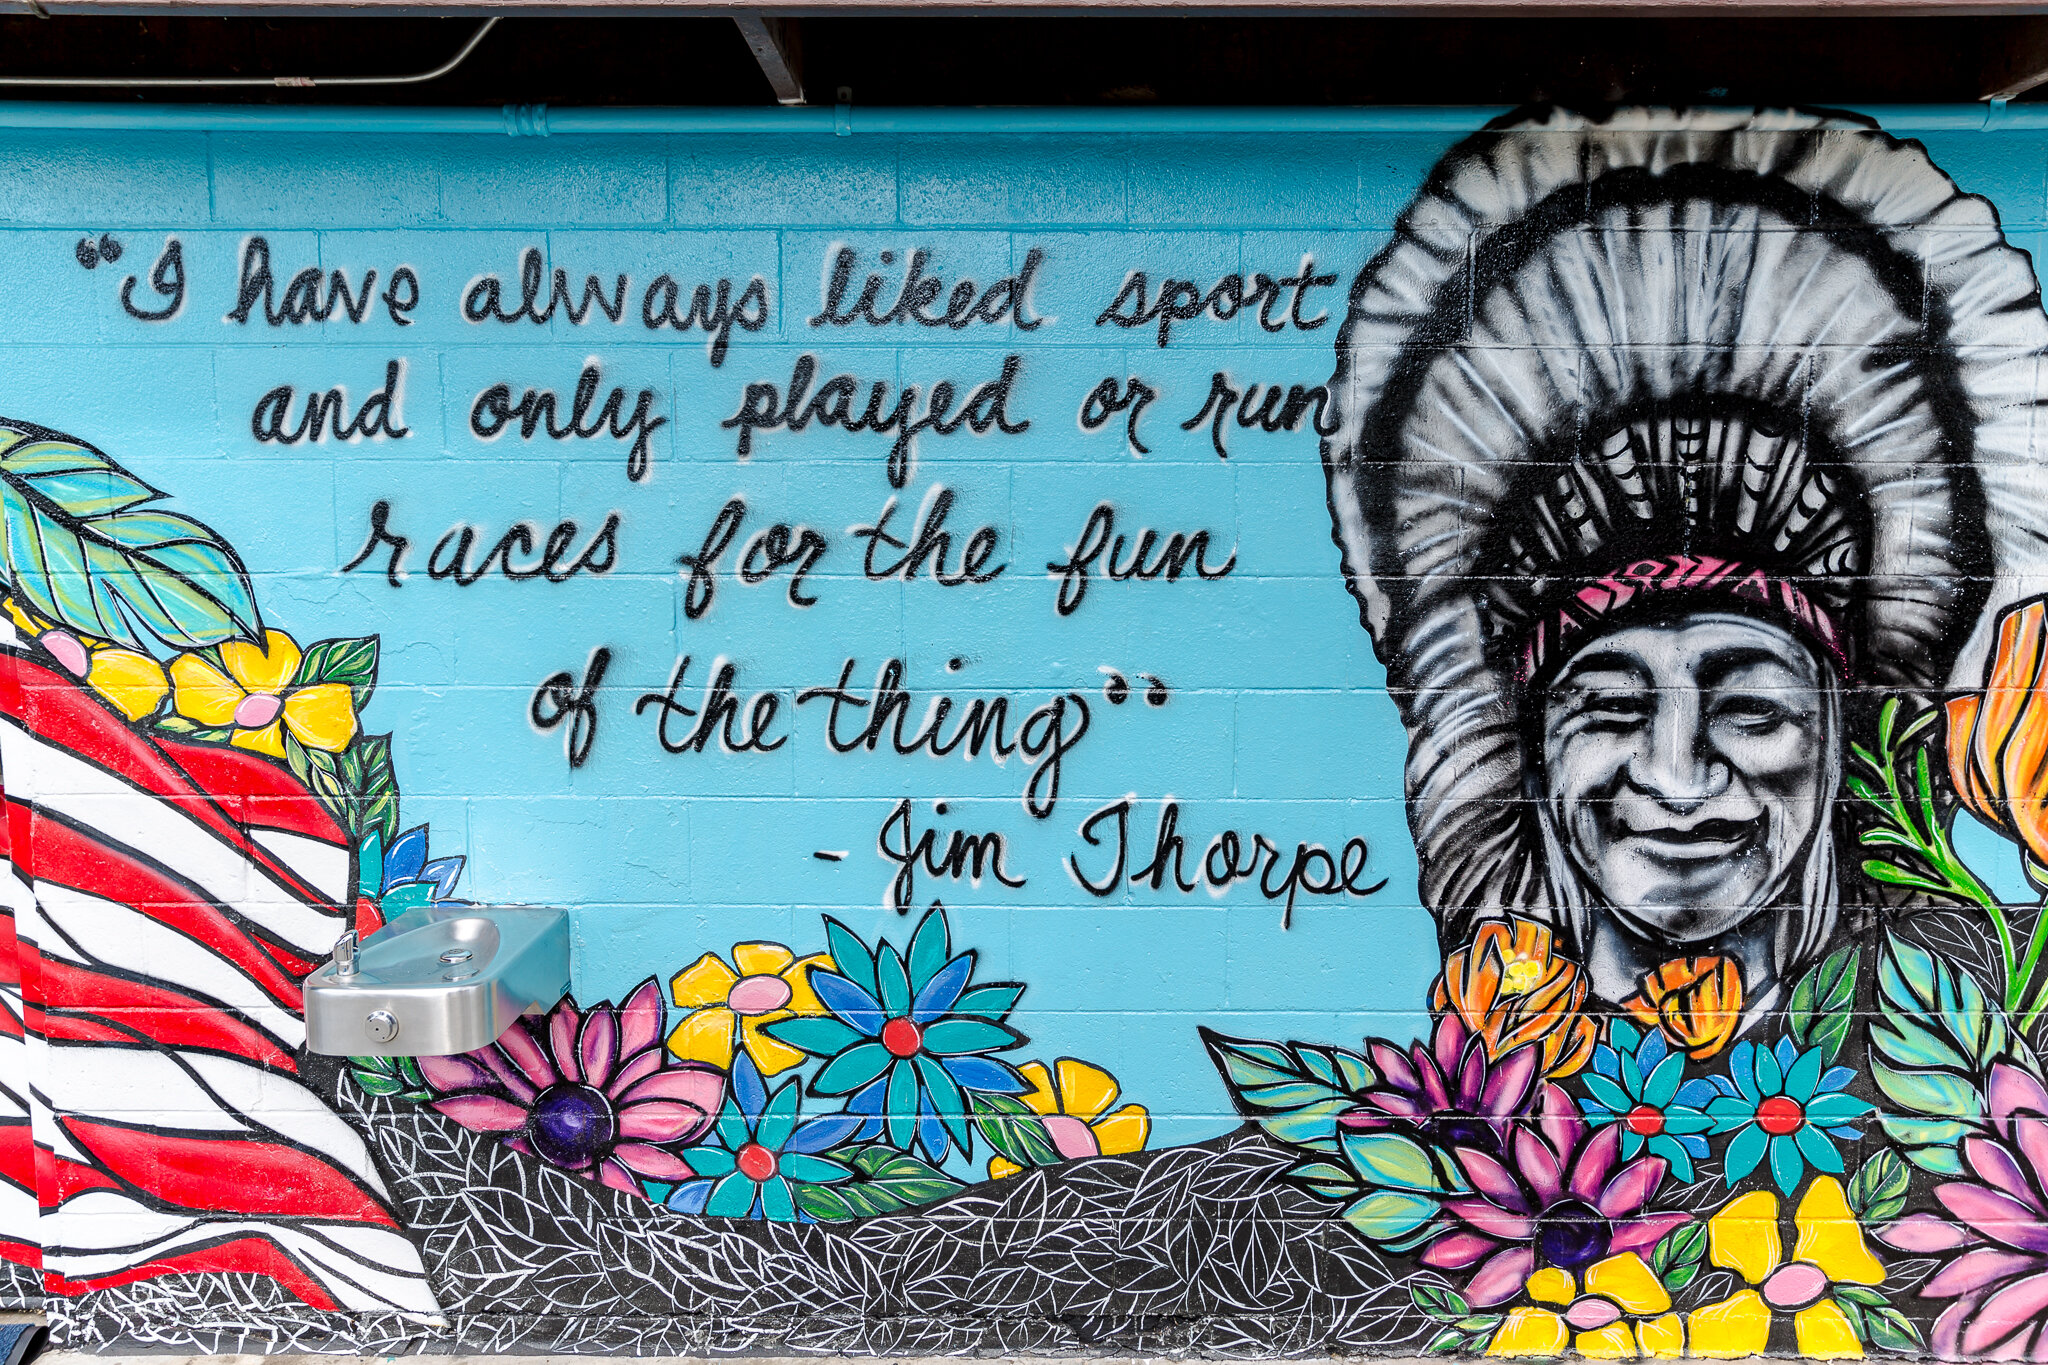 Quote by Jim Thorpe